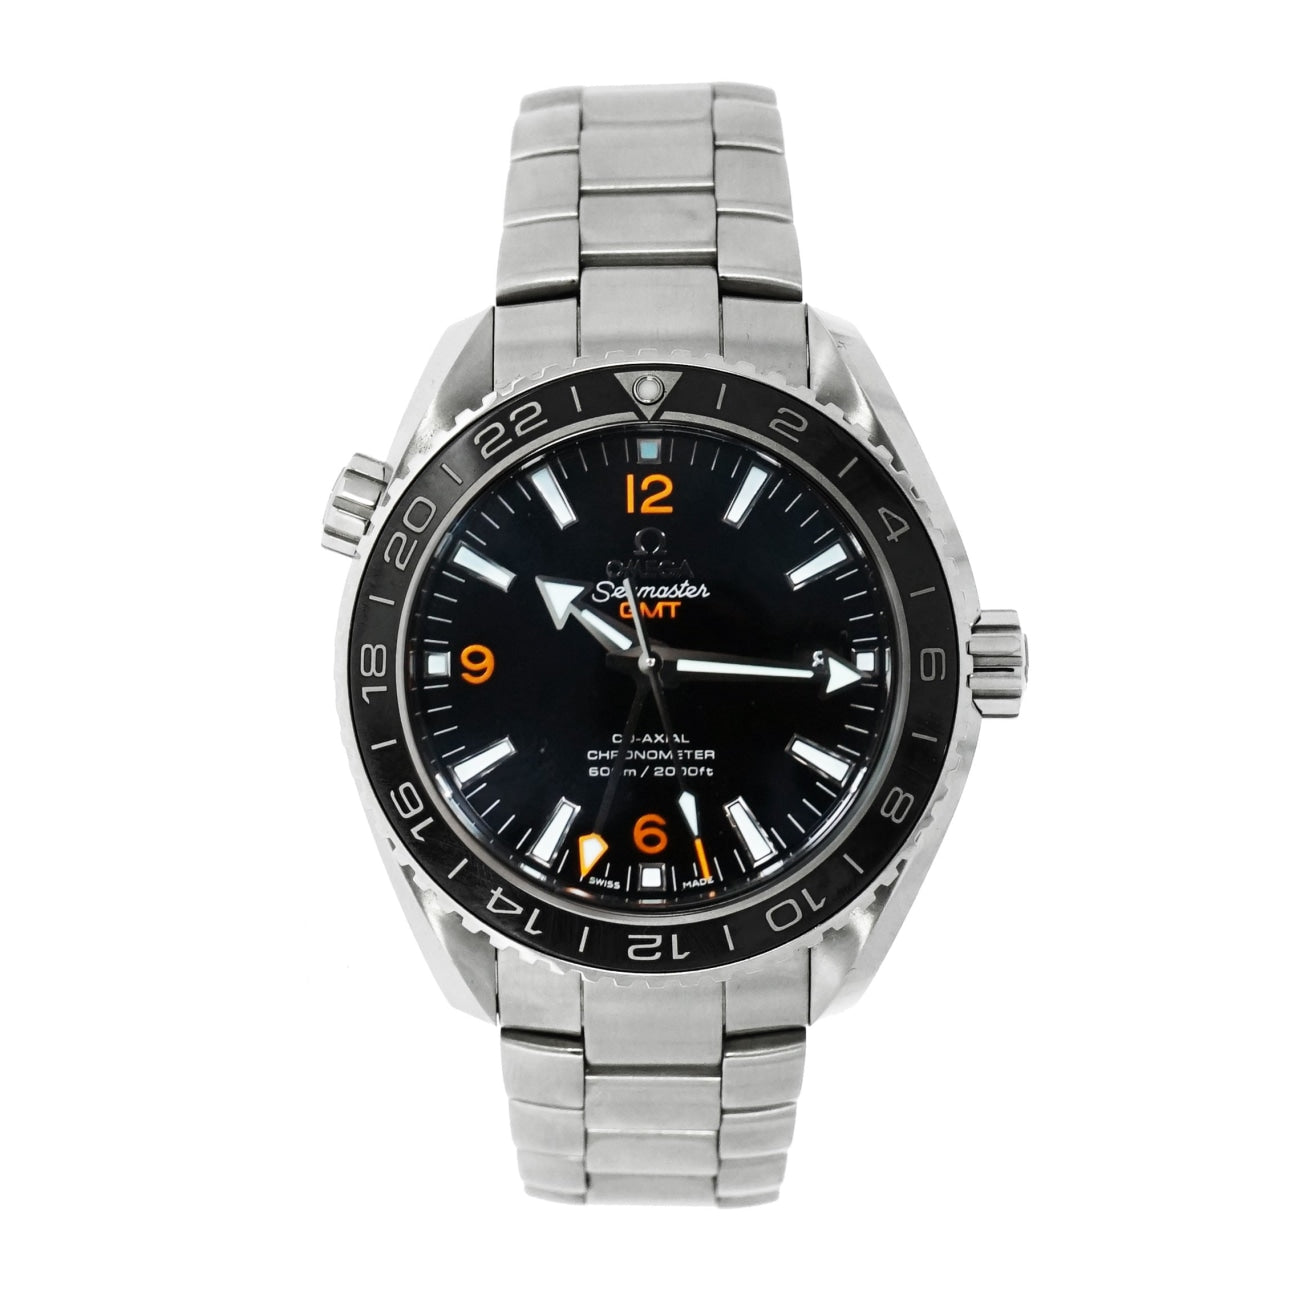 Pre-Owned Omega Watches - Seamaster Planet Ocean GMT 600M | Manfredi Jewels